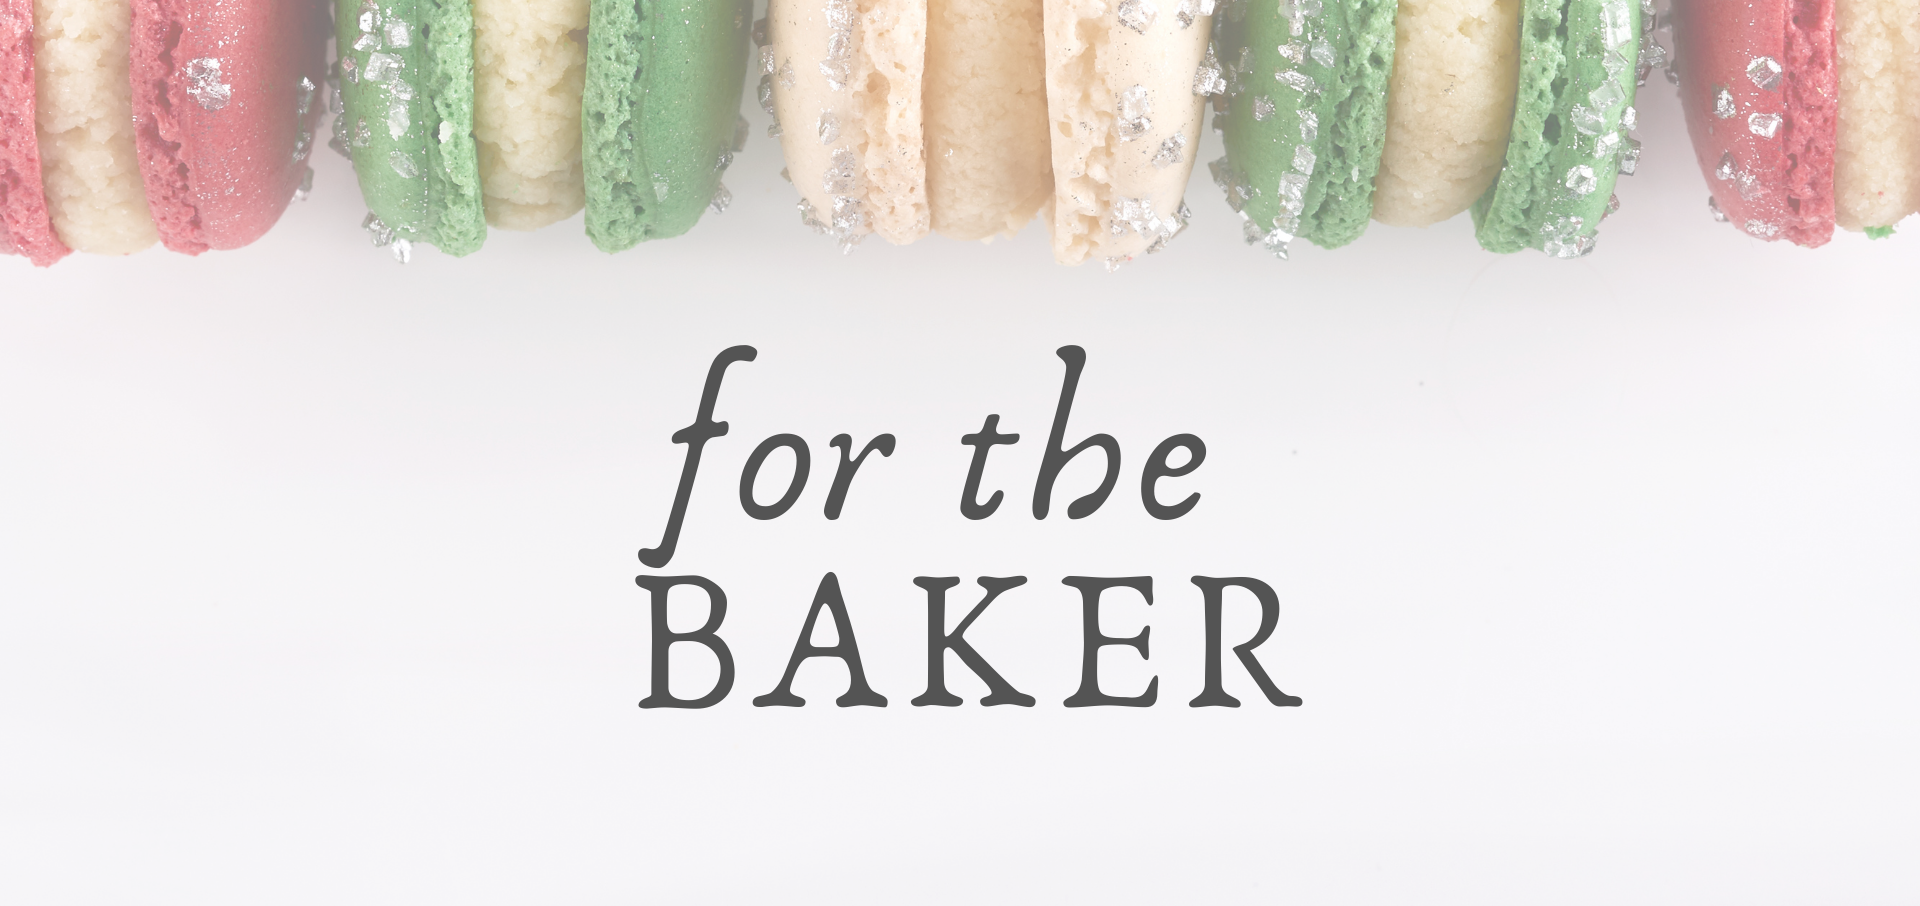 gifts for the bakery, bakery ornaments, baker christmas present